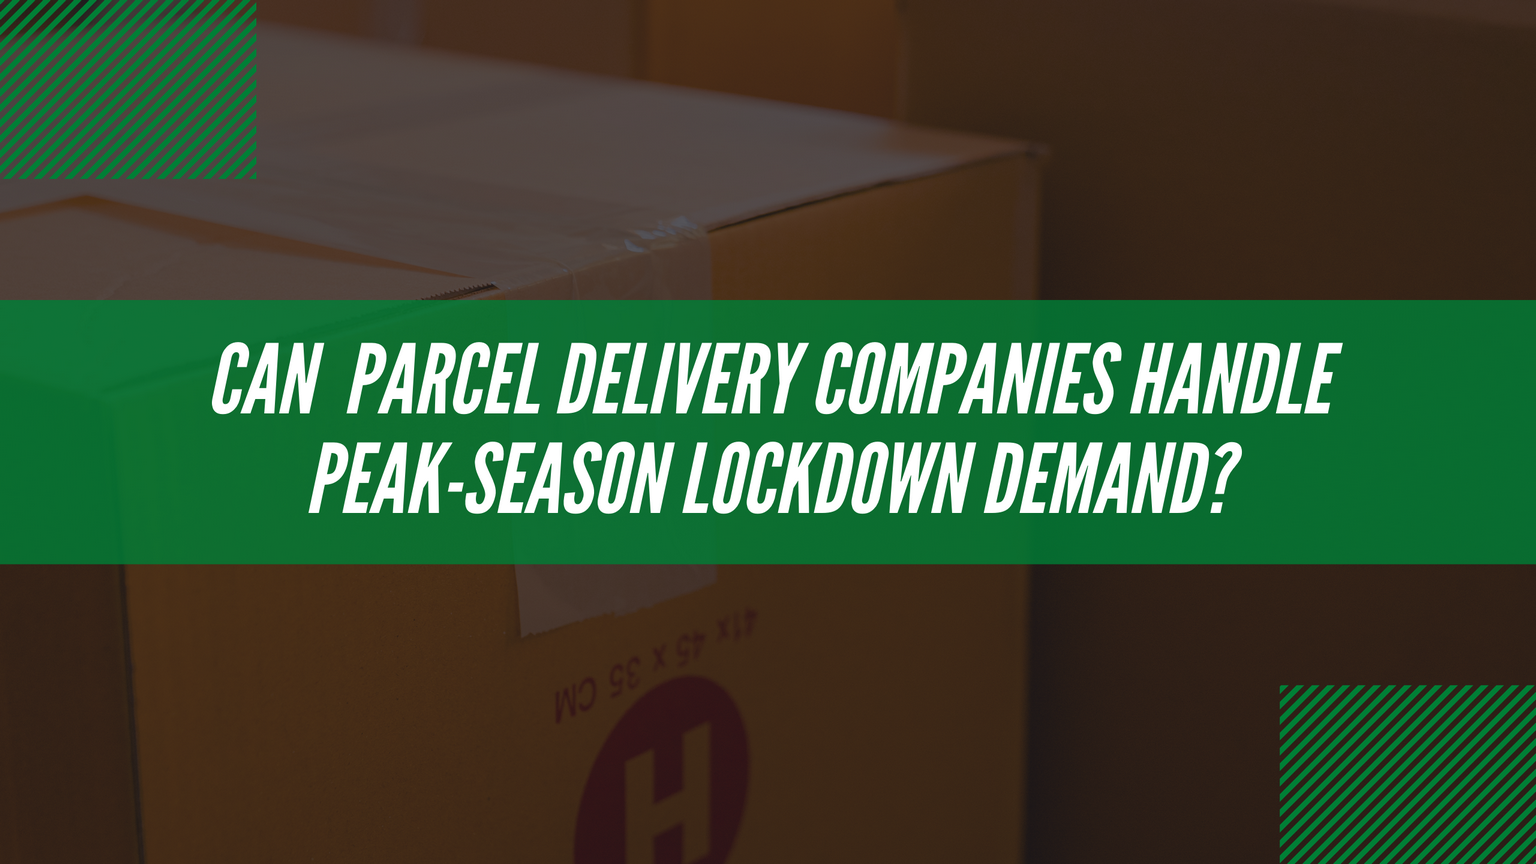 Can parcel delivery companies handle the demands of peak season 2020?